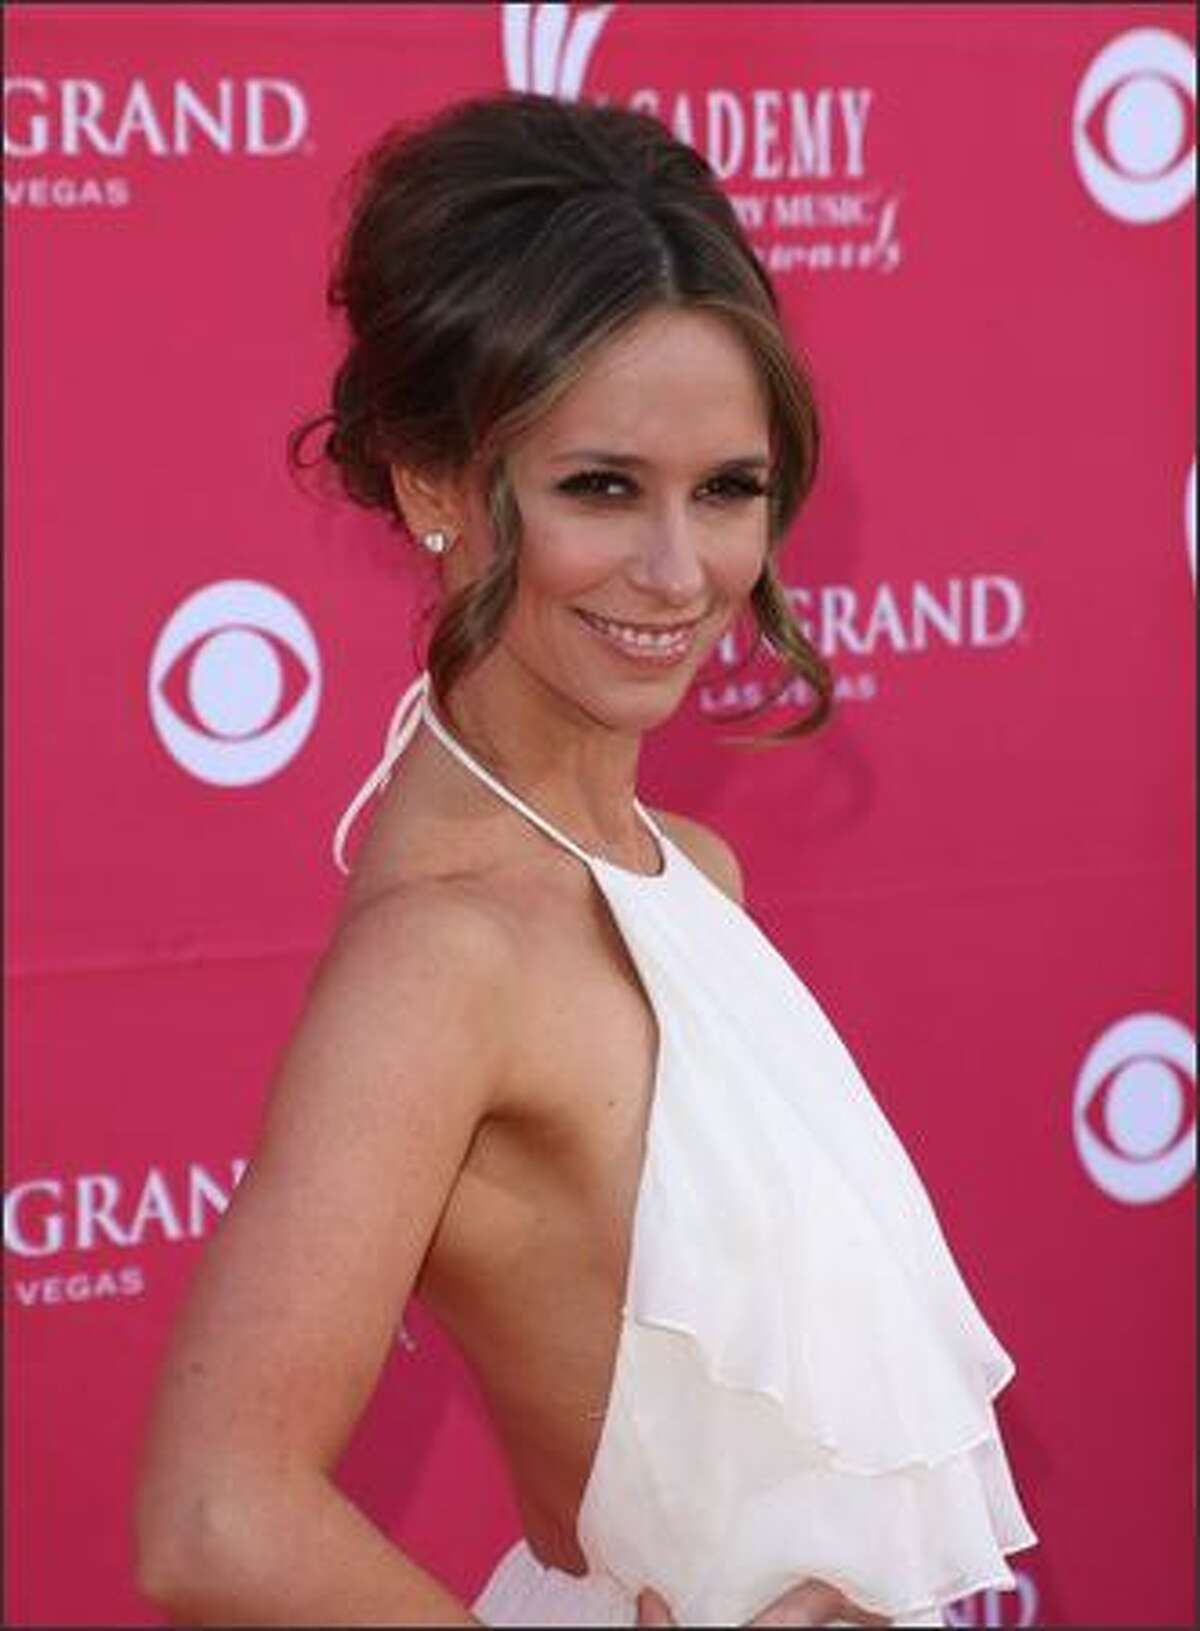 Actress Jennifer Love Hewitt arrives at the 44th annual Academy Of Country Music Awards held at the MGM Grand in Las Vegas, Nevada.